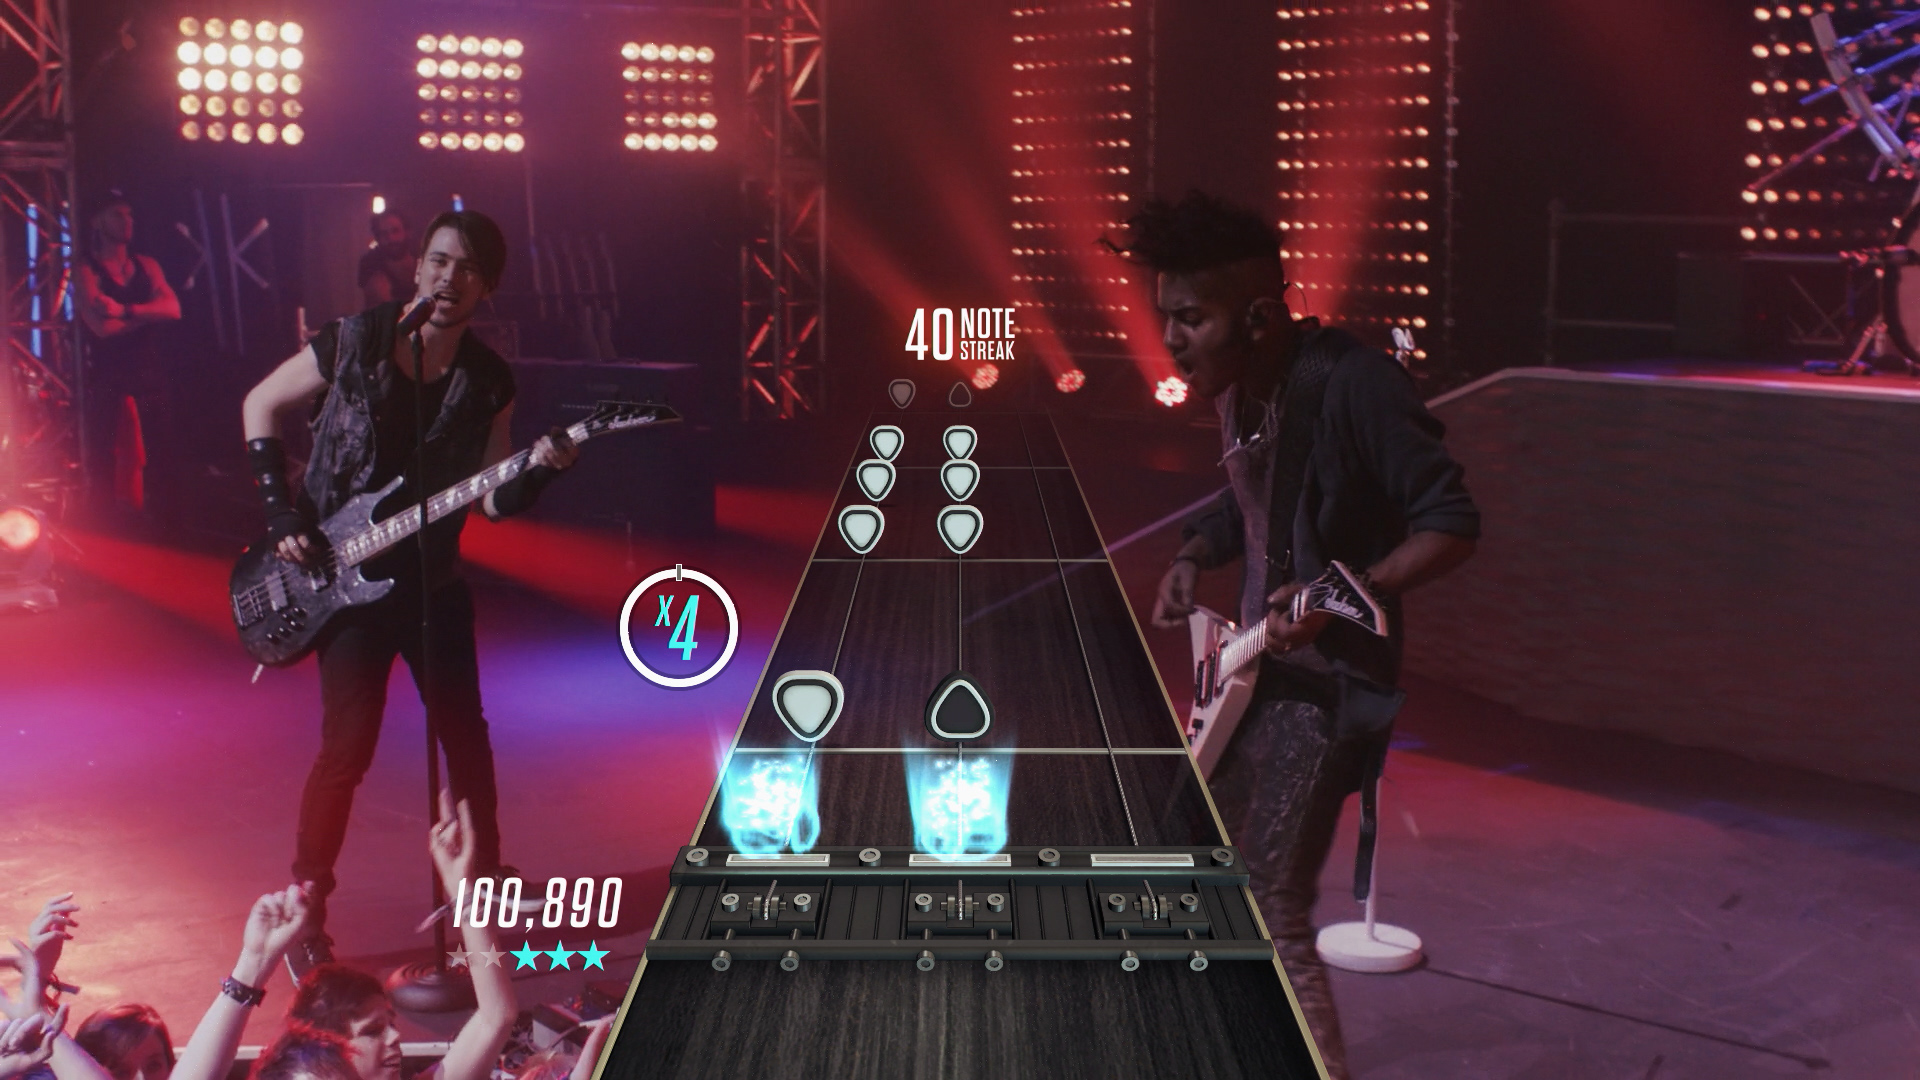 http://www.destructoid.com/ul/315533-review-guitar-hero-live/GGH3-noscale.jpg